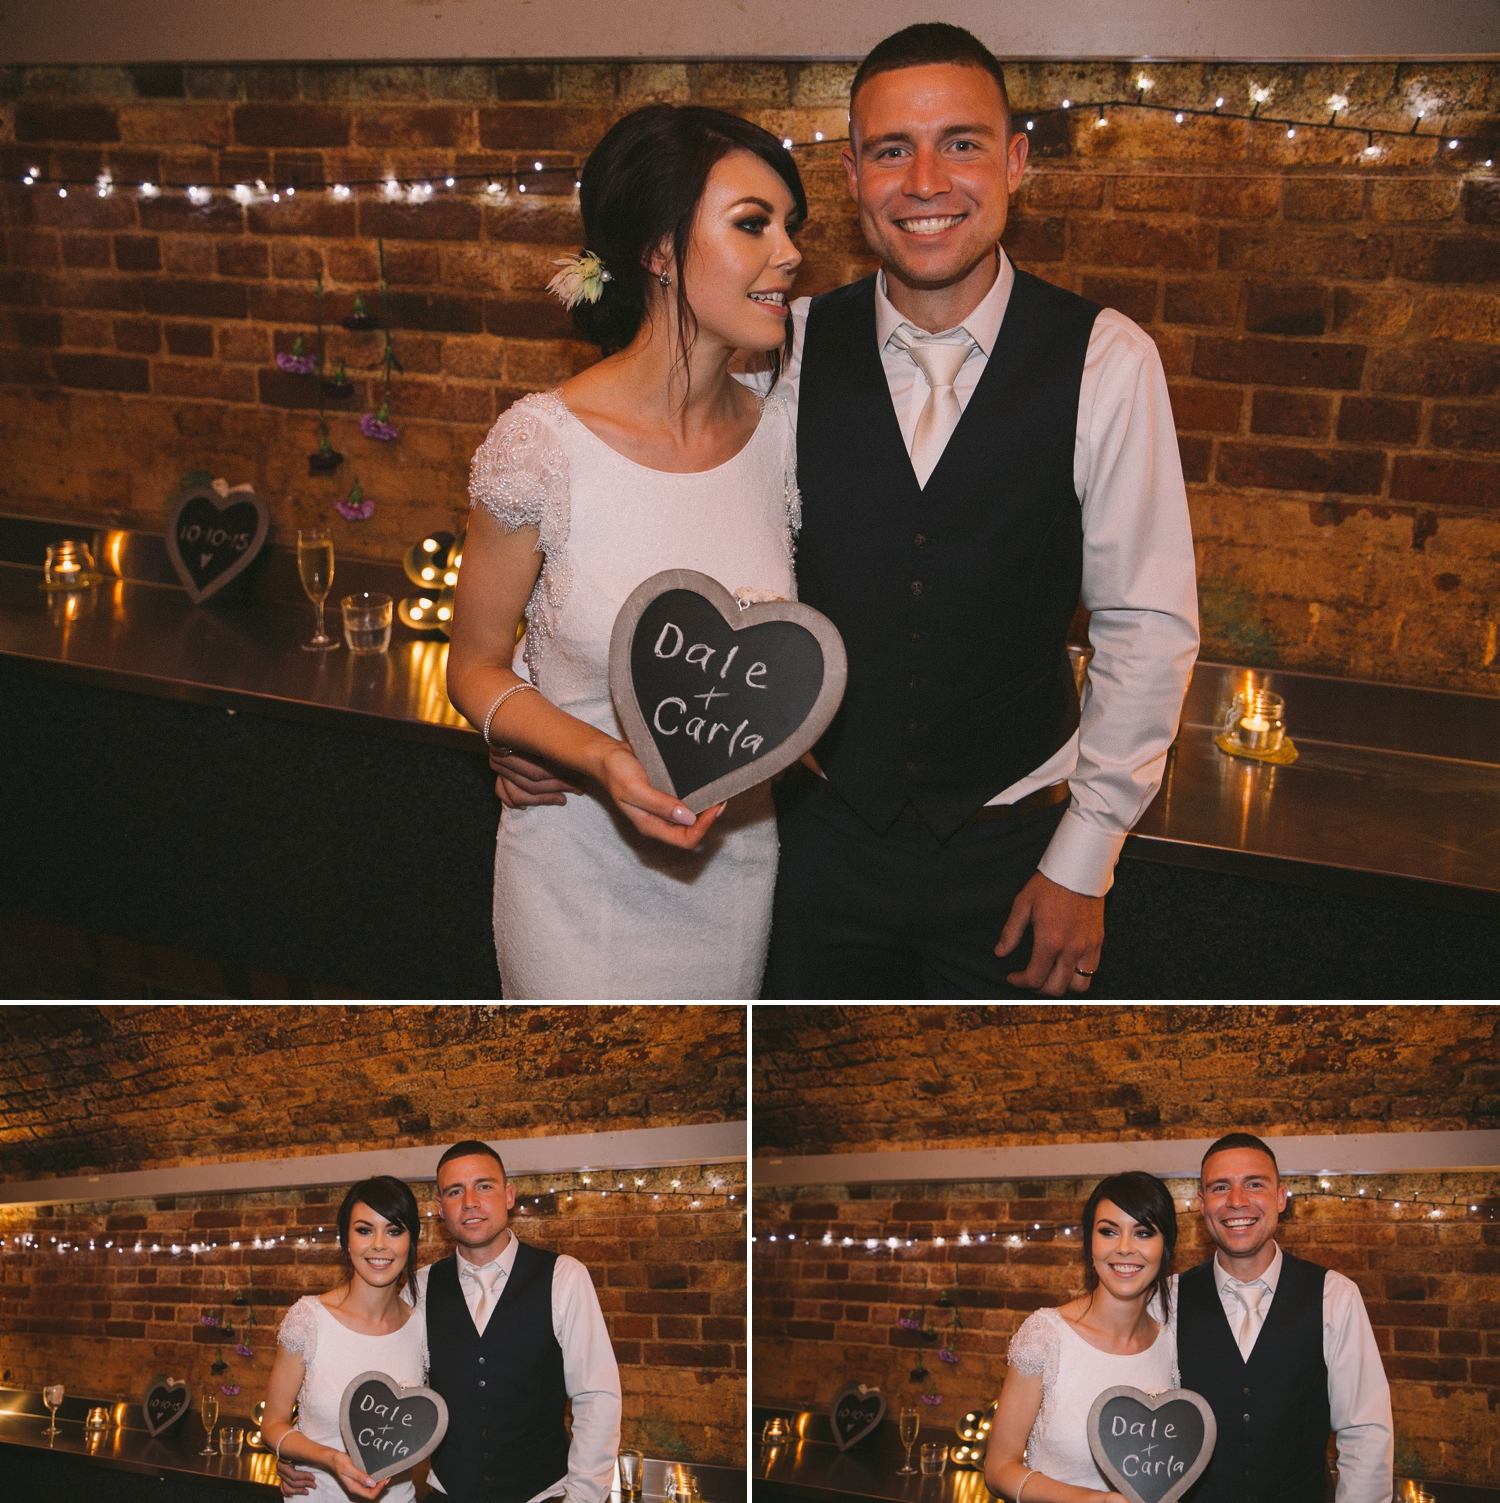 carla-dale-adelaide-wedding-photographer-006